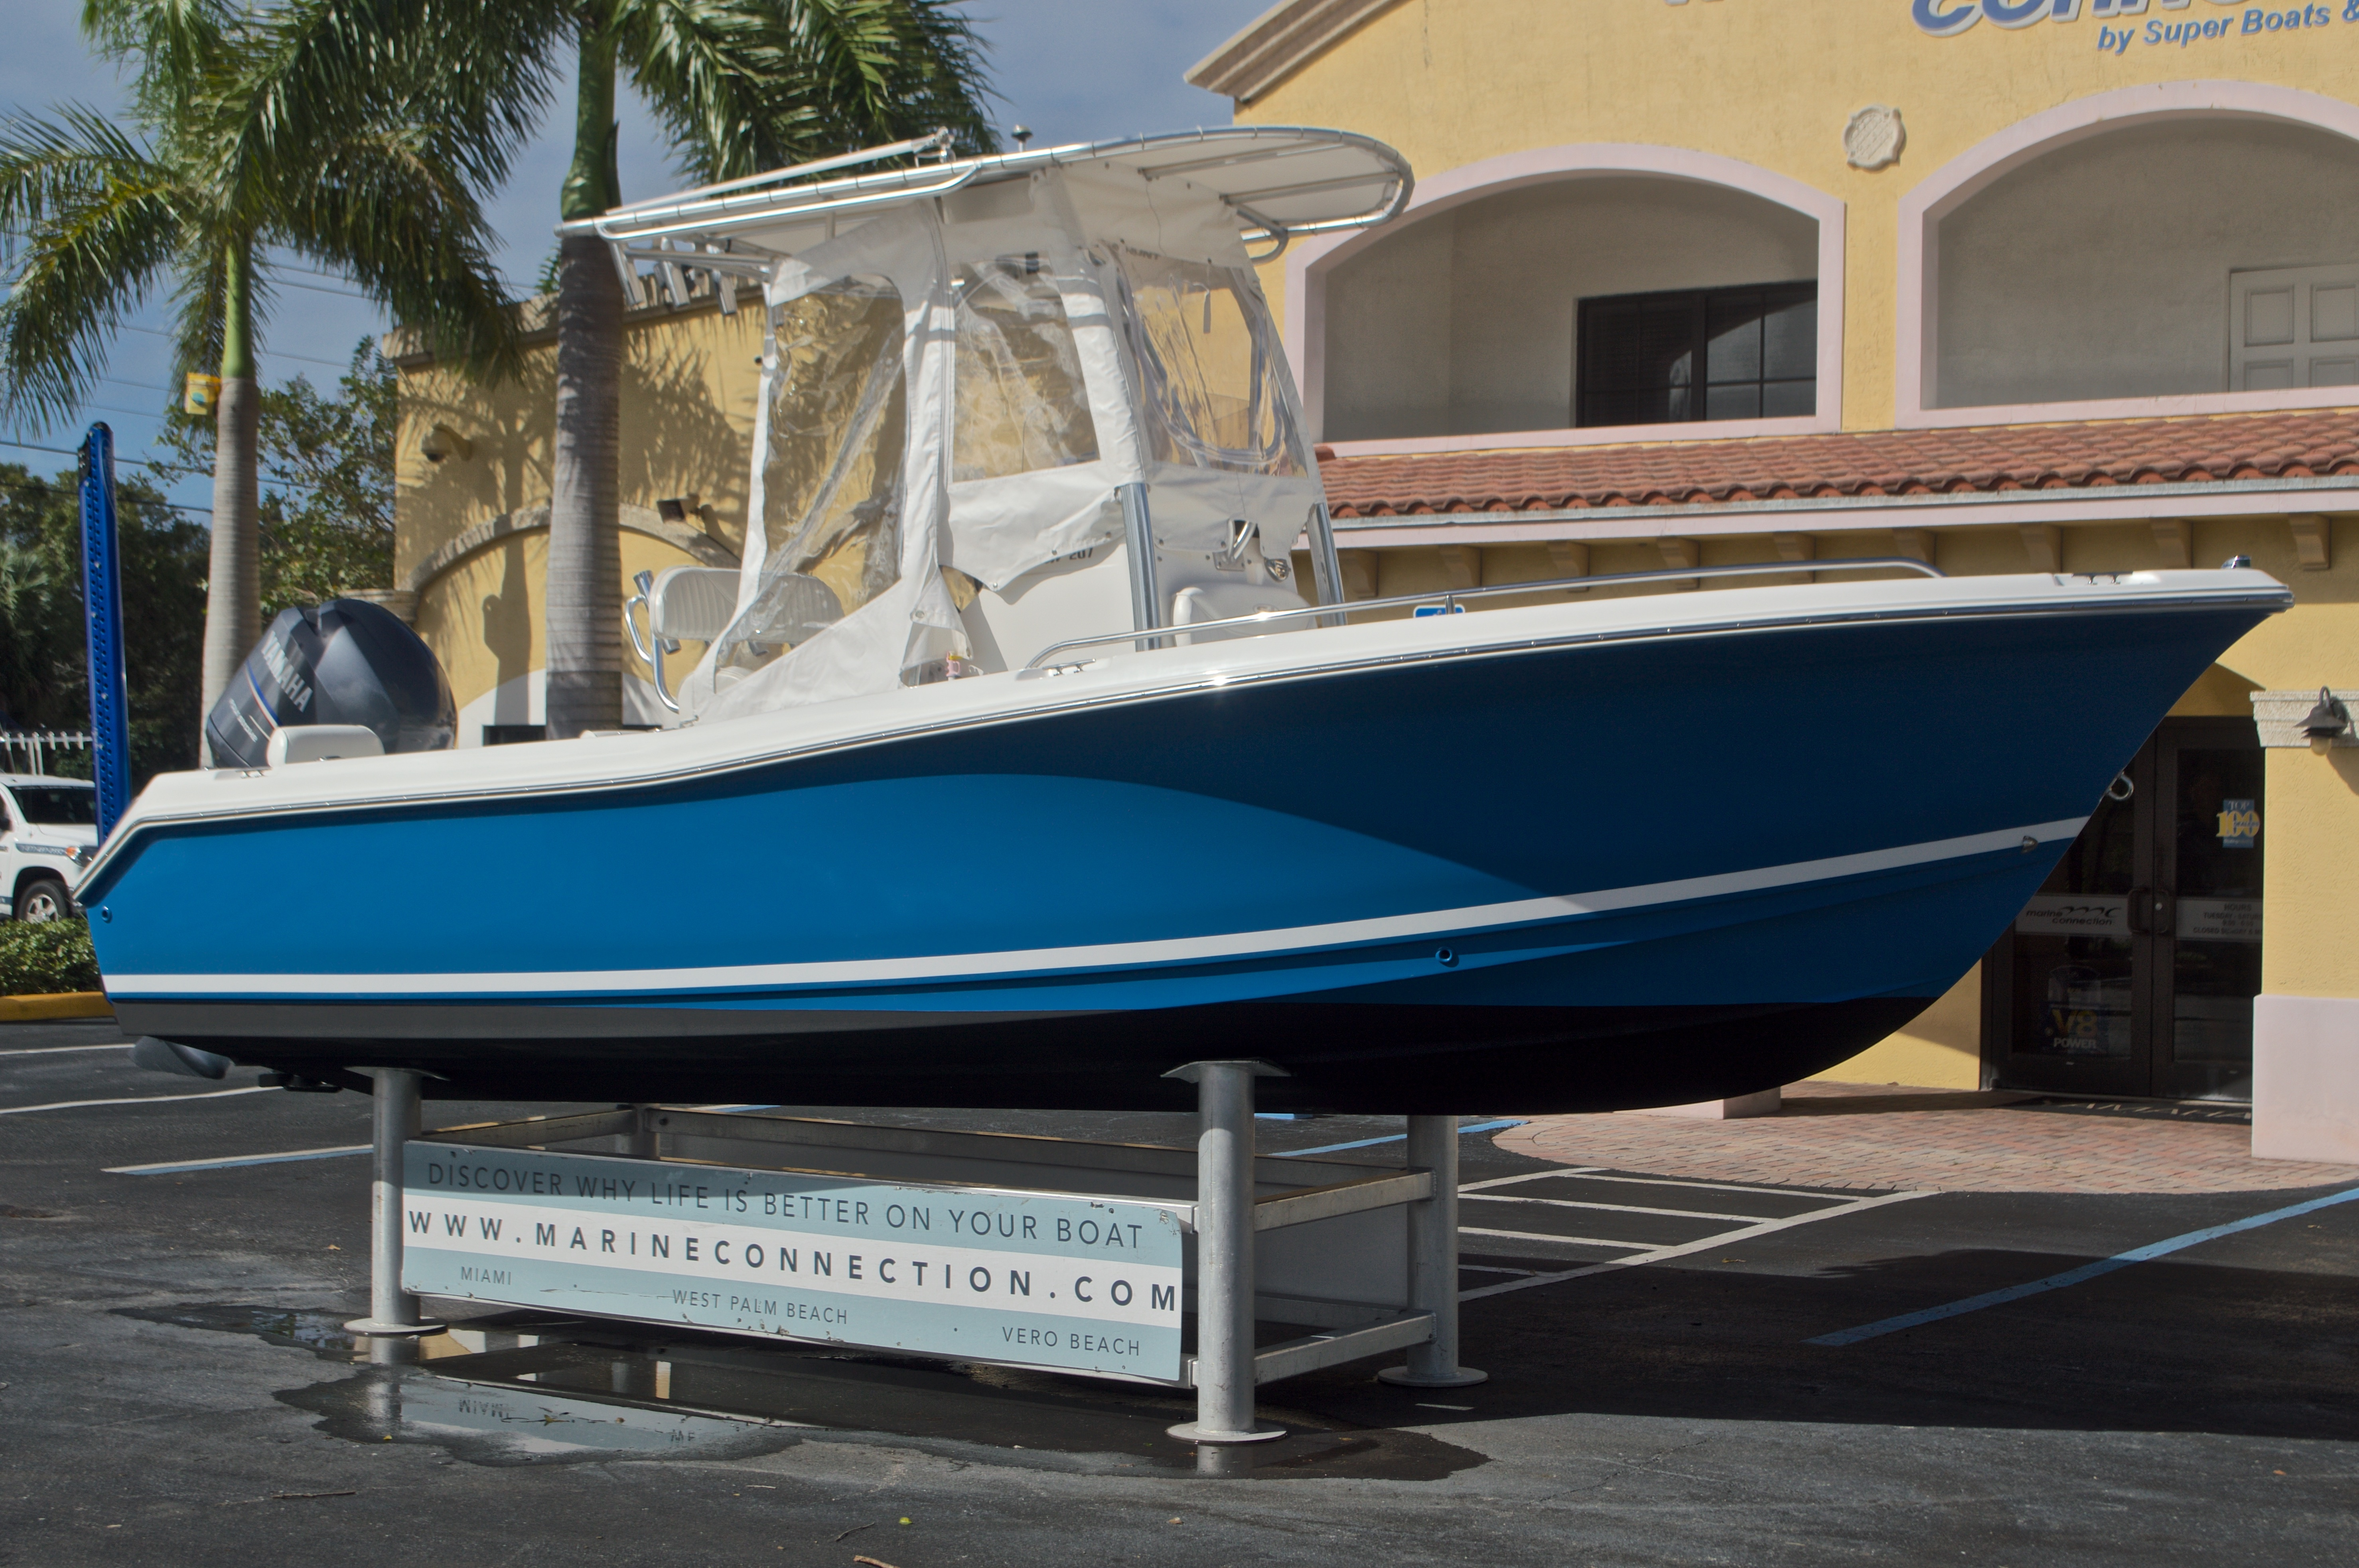 Thumbnail 1 for Used 2009 Sea Hunt 207 Triton boat for sale in West Palm Beach, FL